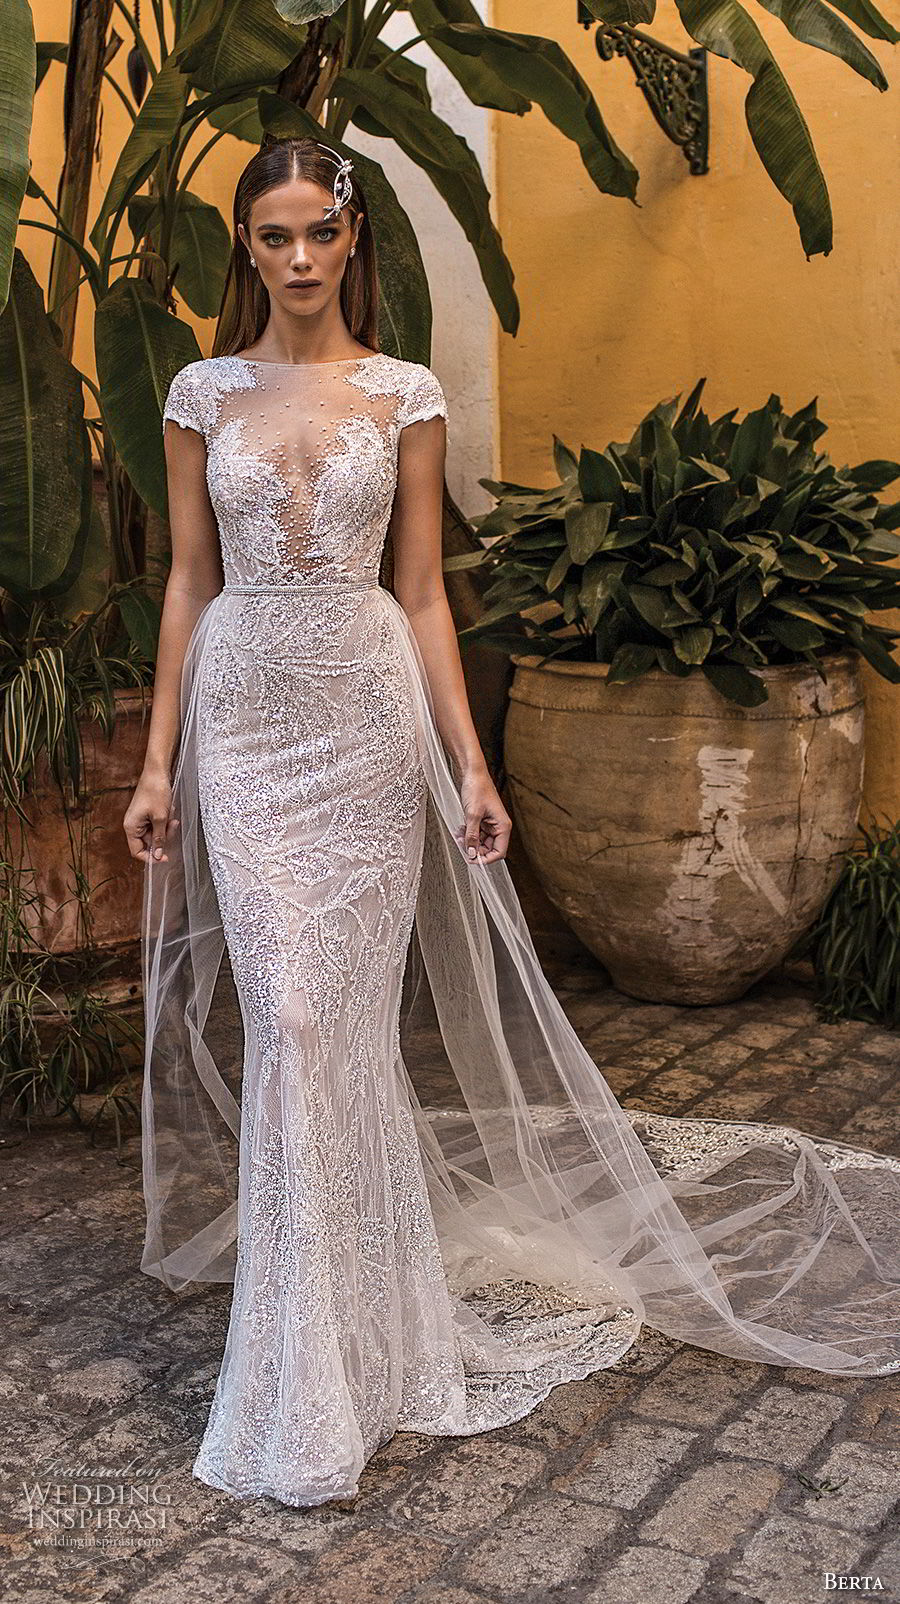 berta fall 2018 bridal cap sleeves illusion bateau sweetheart neckline full embellishment elegant fit and flare wedding dress keyhole back medium train (21) mv